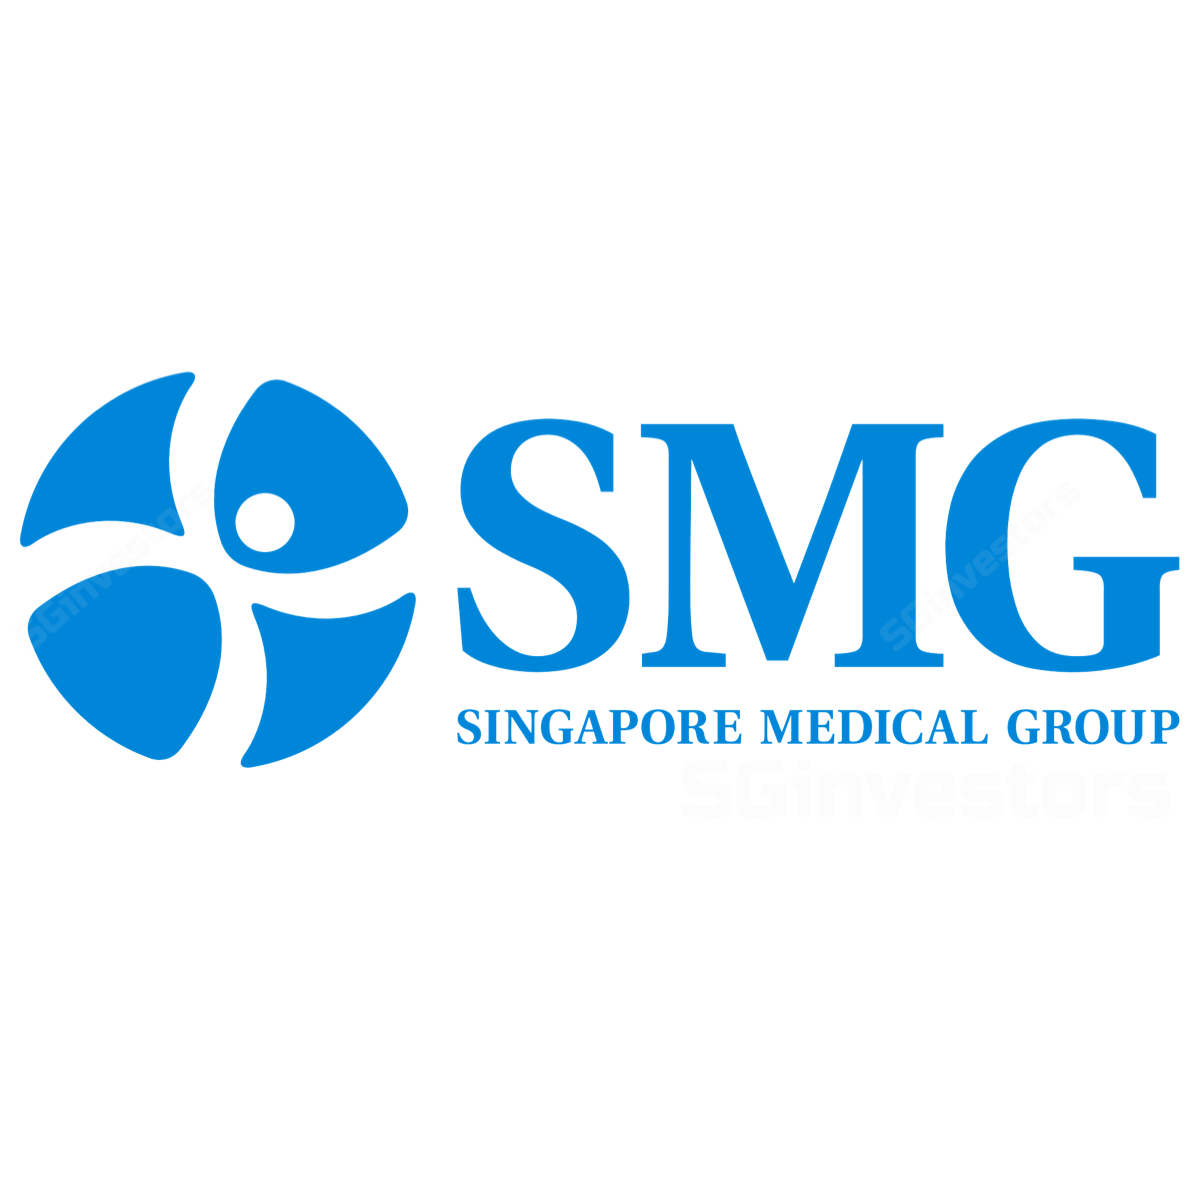 Singapore Medical Group (SMG) - UOB Kay Hian 2018-05-16: 1Q18 Results In-line; Sw1 Acquisition Earnings Yet To Make Contribution